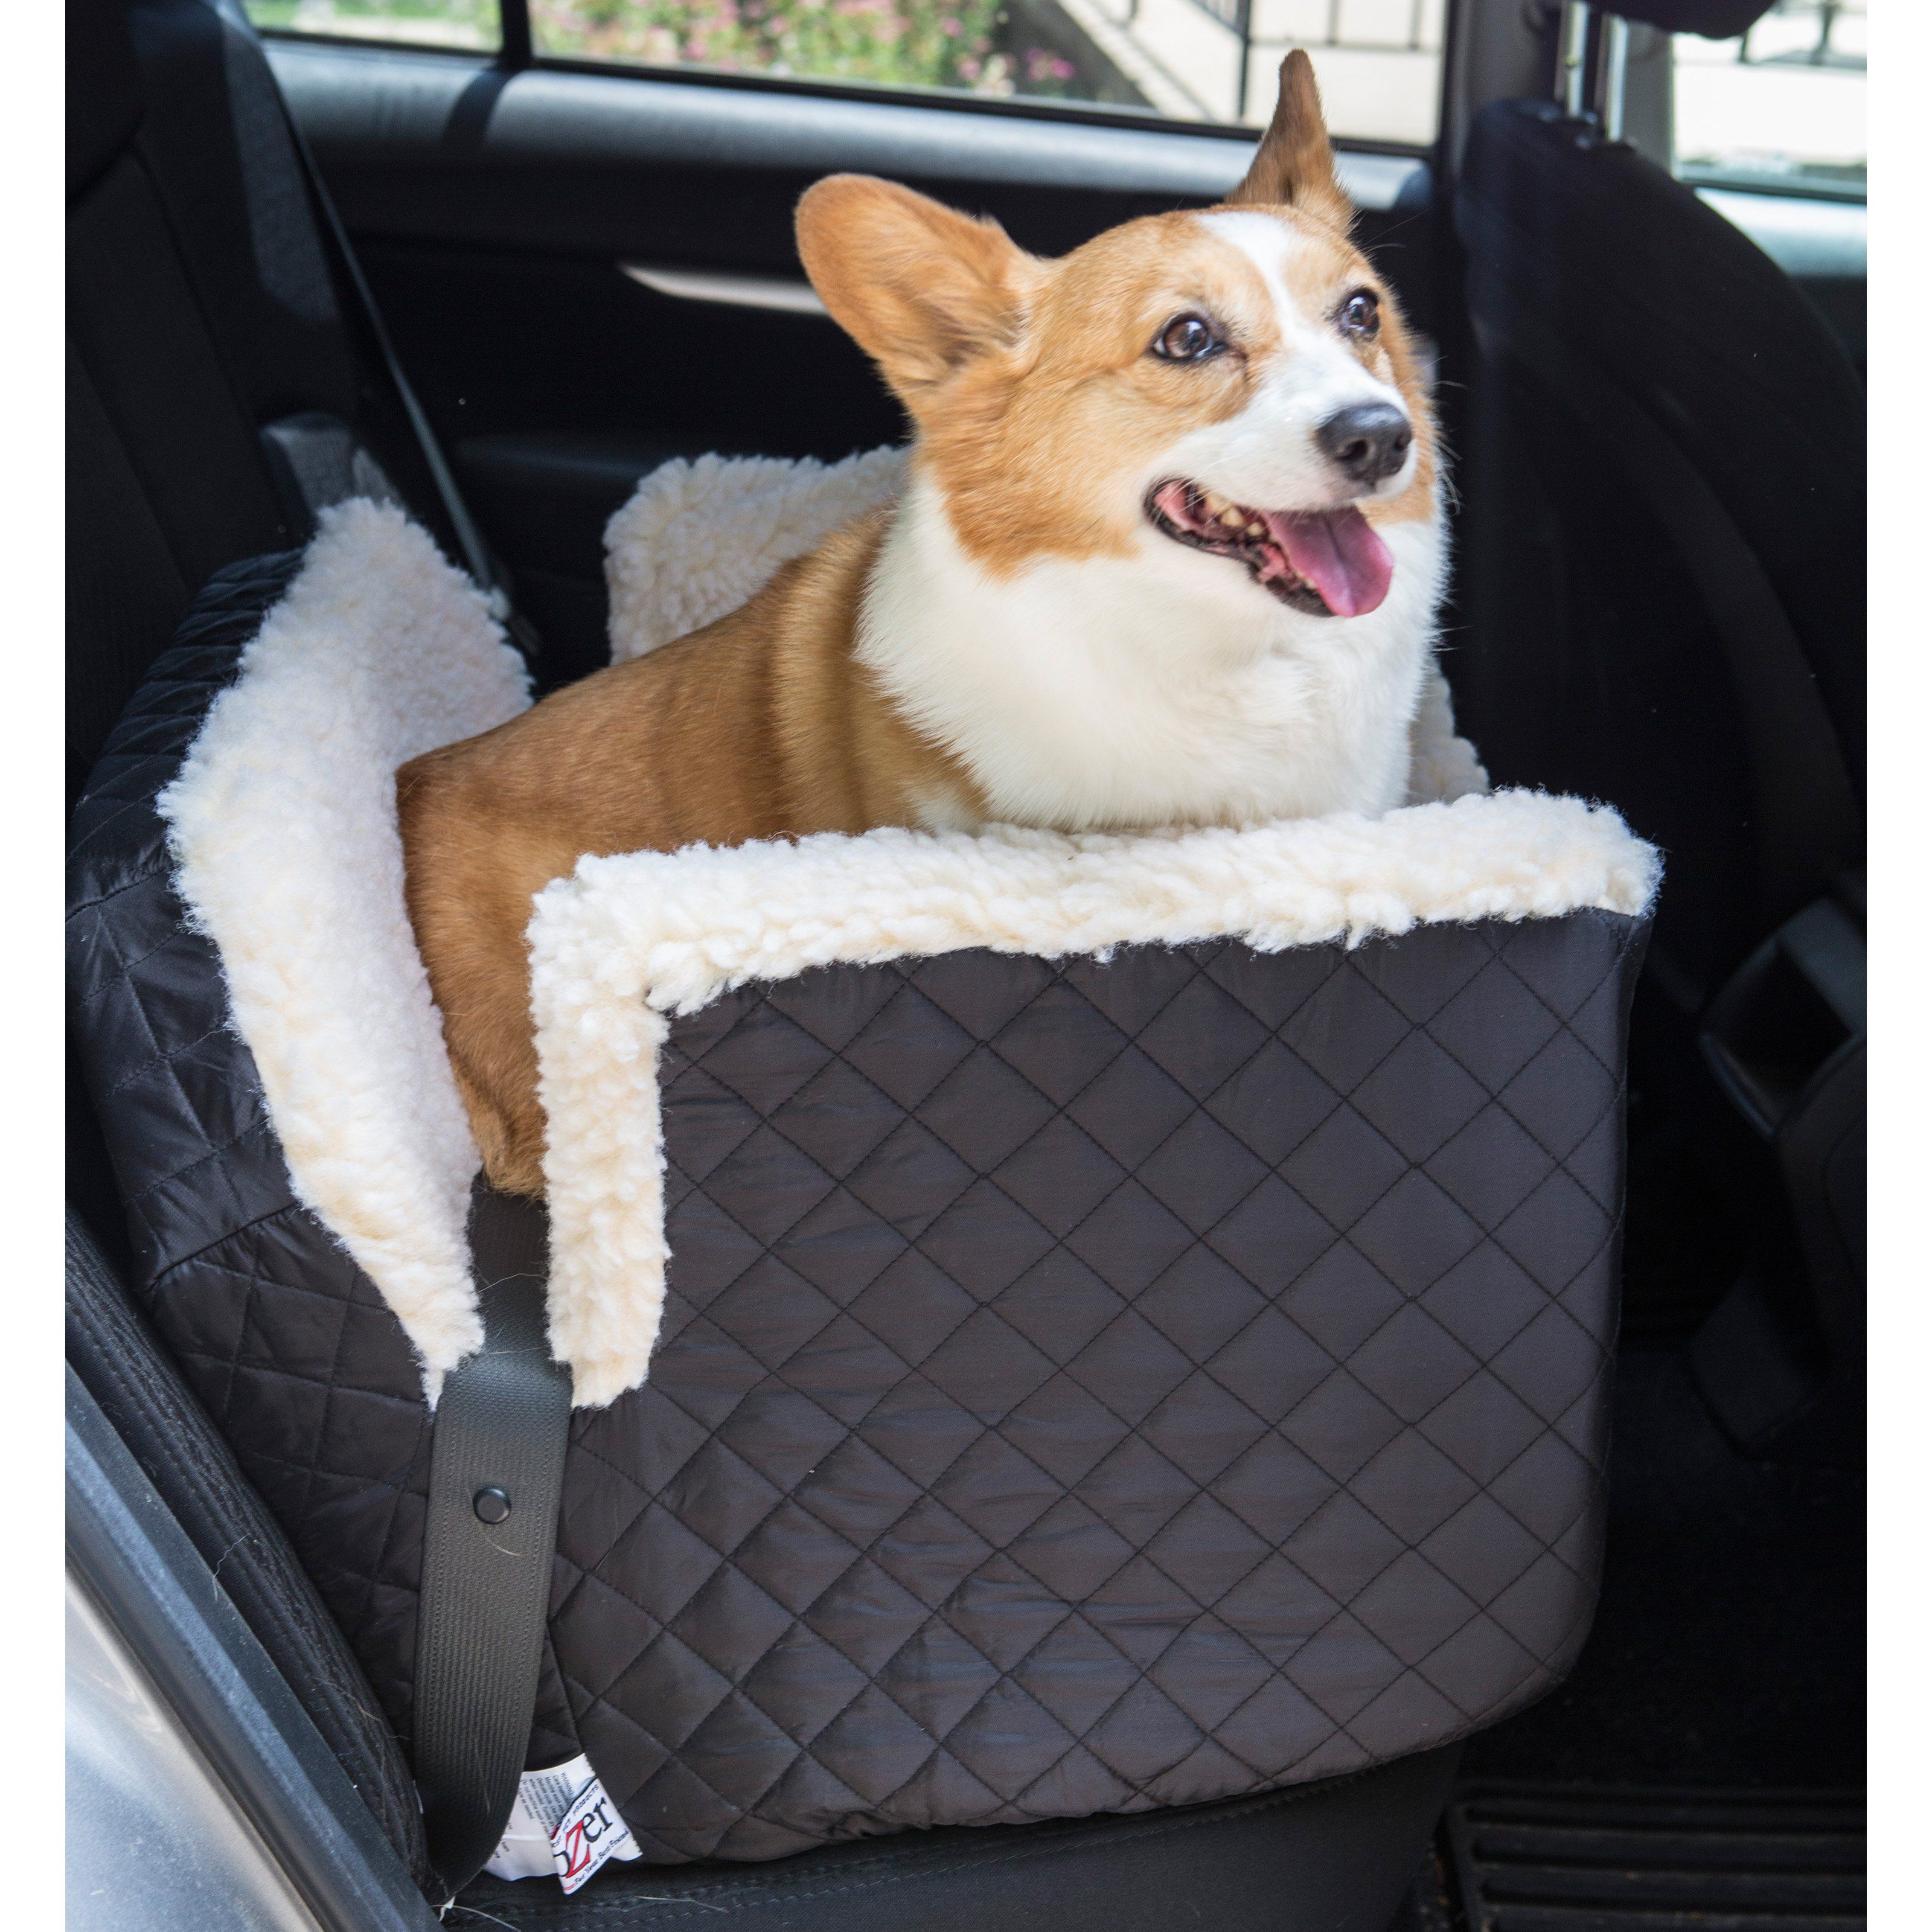 b70de3dbf207ed317f264958f64a20ba Take A Look About Jeep Dog Accessories with Captivating Gallery Cars Review